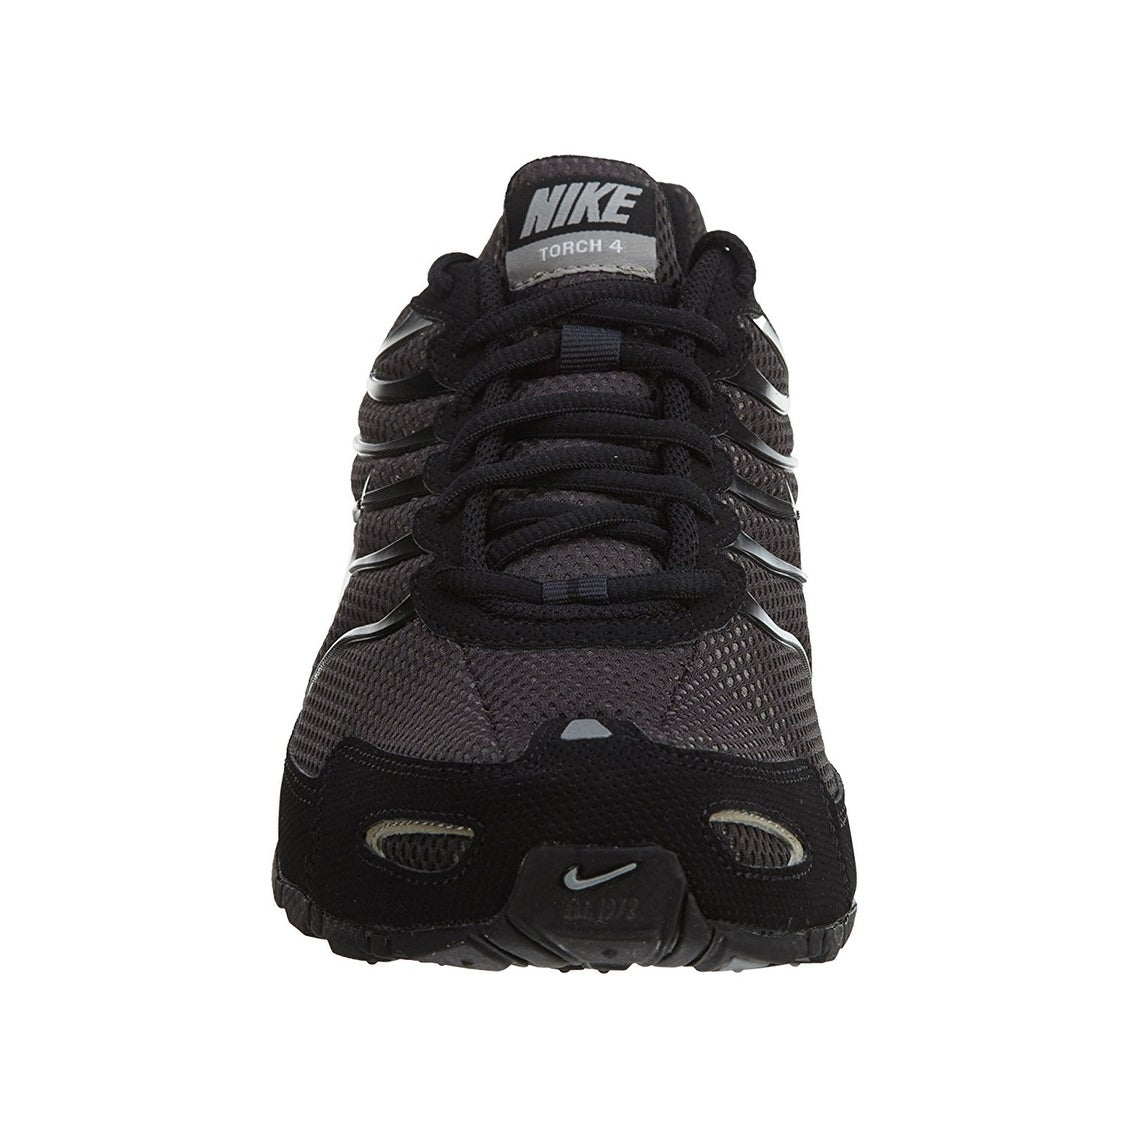 17a1b1c5a8b64d Shop Nike Men s Air Max Torch 4 Running Shoe  343846-002 (8.5) - Free  Shipping Today - Overstock - 18276143